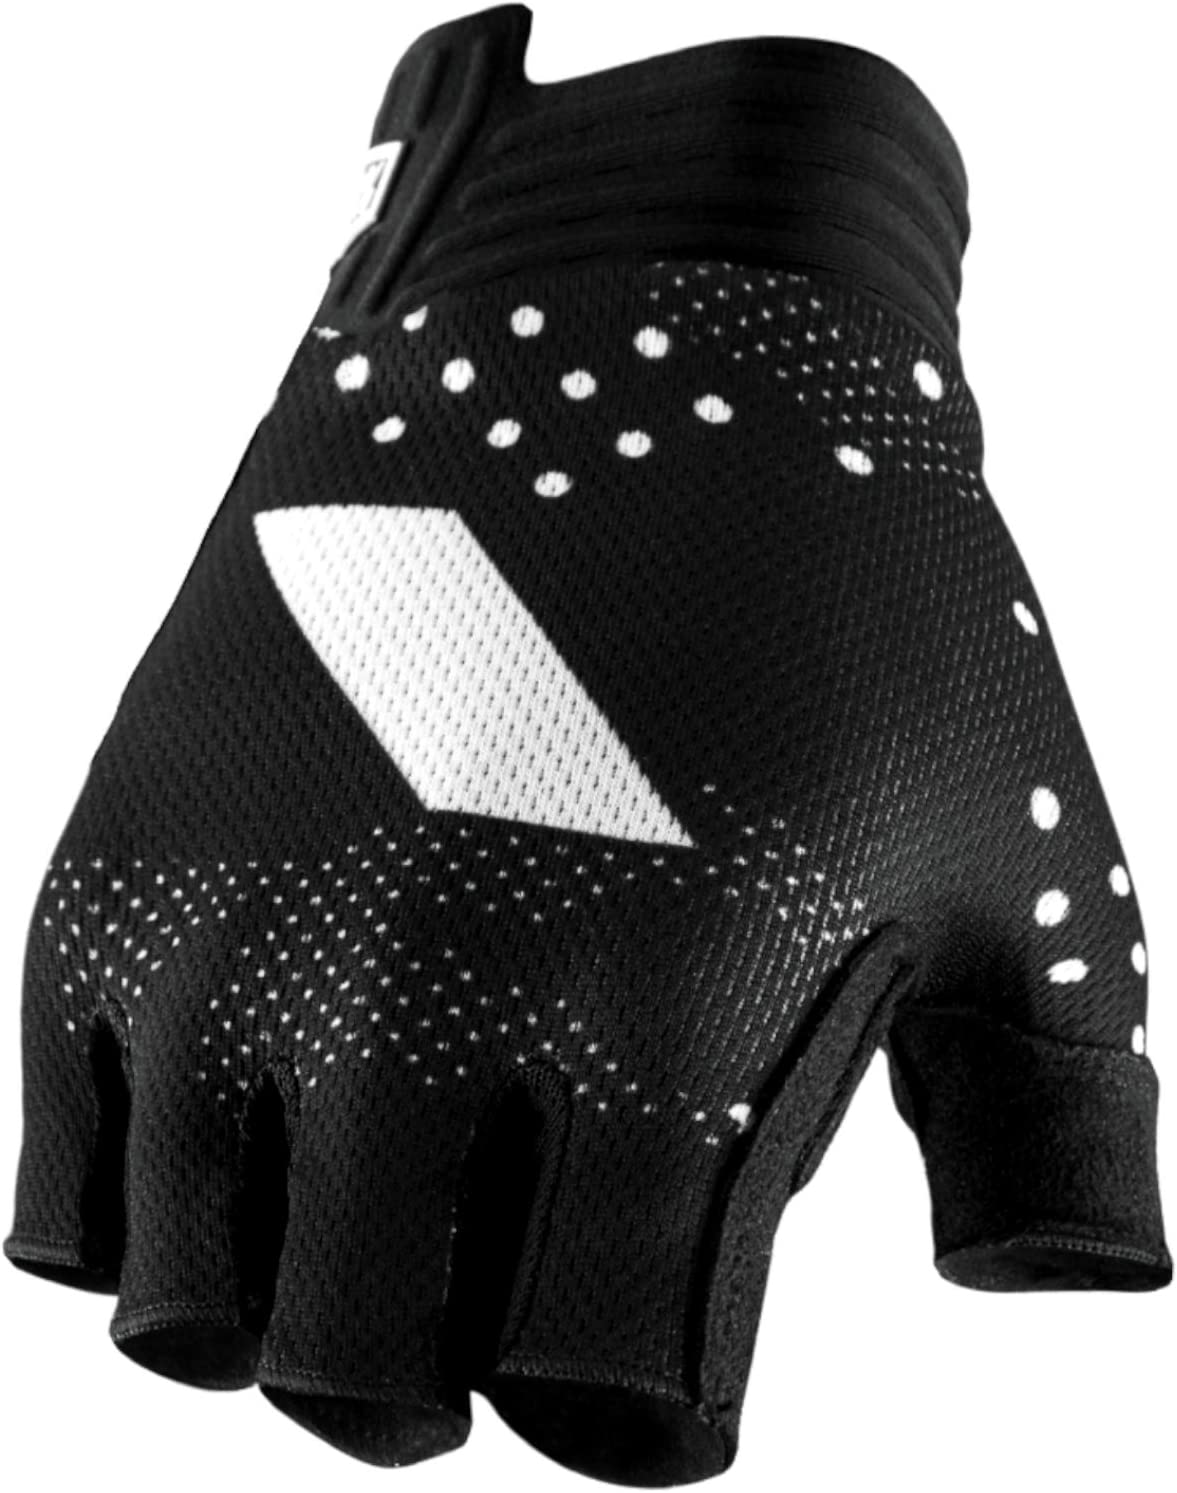 Limited time cheap sale 100% Percent New life Exceeda Road Short Finger Cycling Glove 10021 - Bl